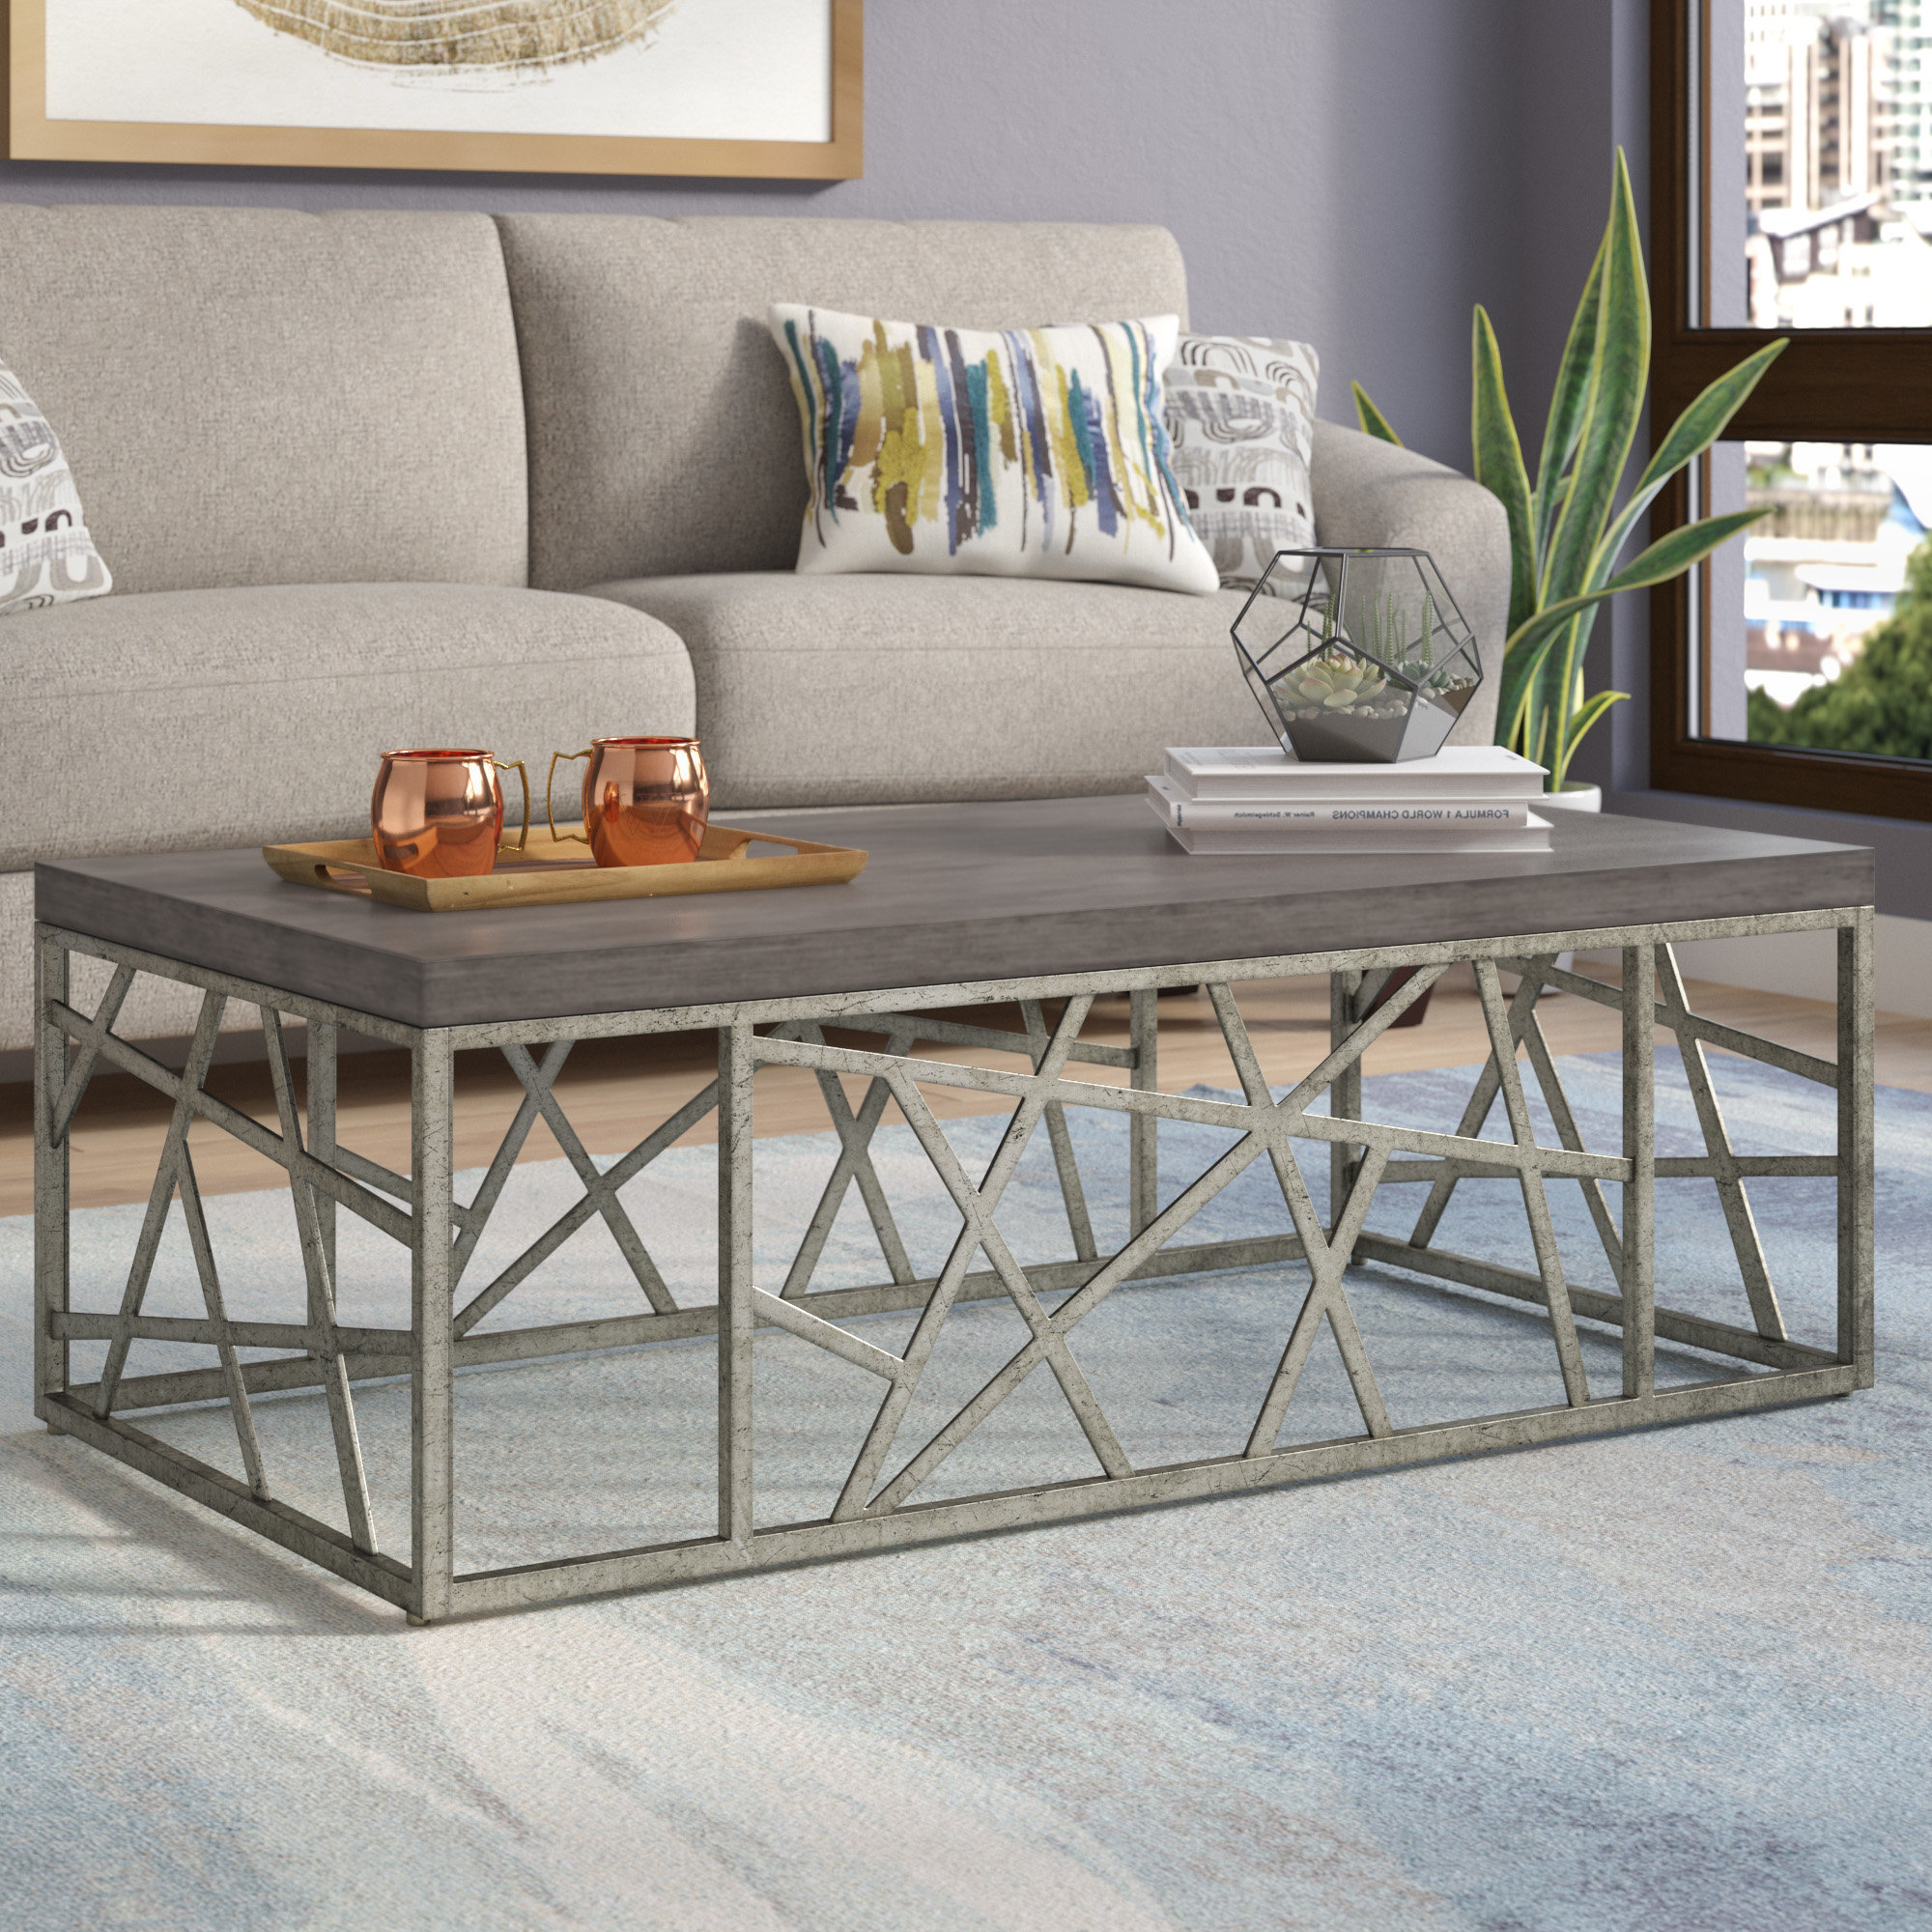 Well Liked Brayden Studio Hiers Coffee Table & Reviews (Gallery 17 of 20)